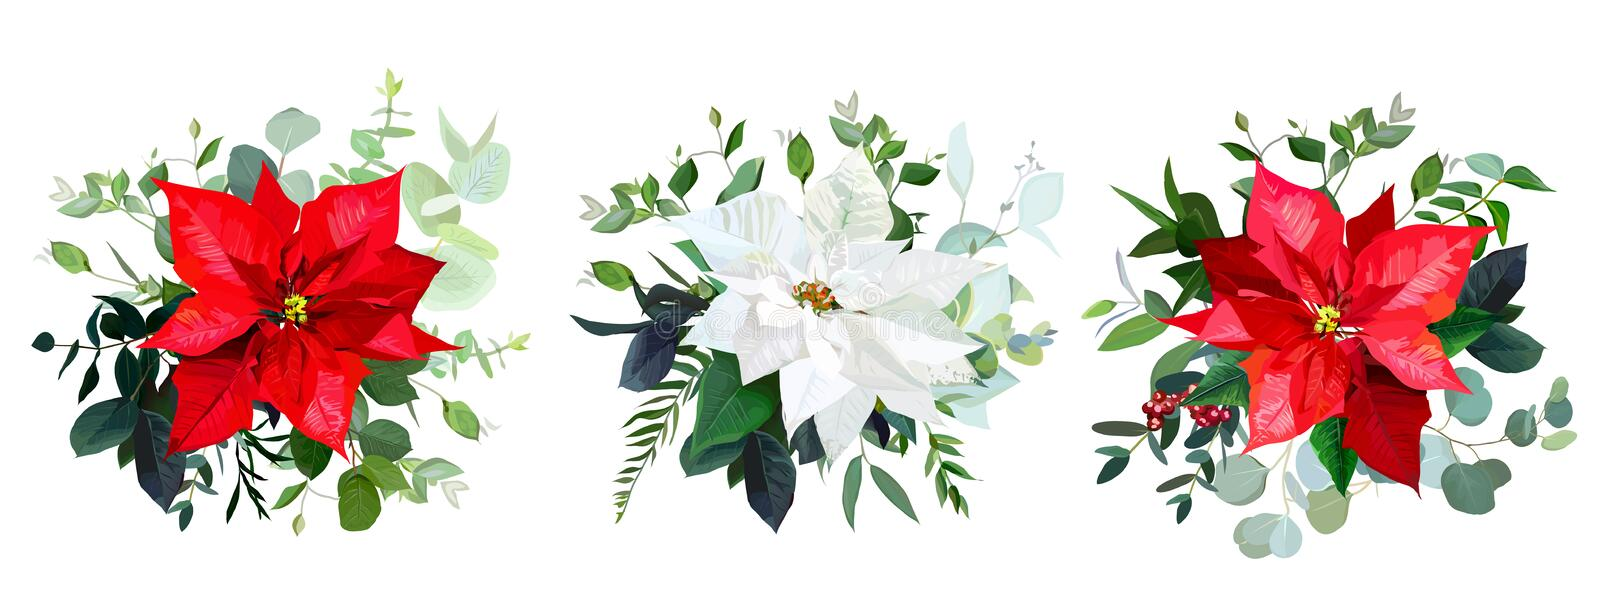 Red poinsettia flowers, christmas greenery, emerald eucalyptus vector illustration